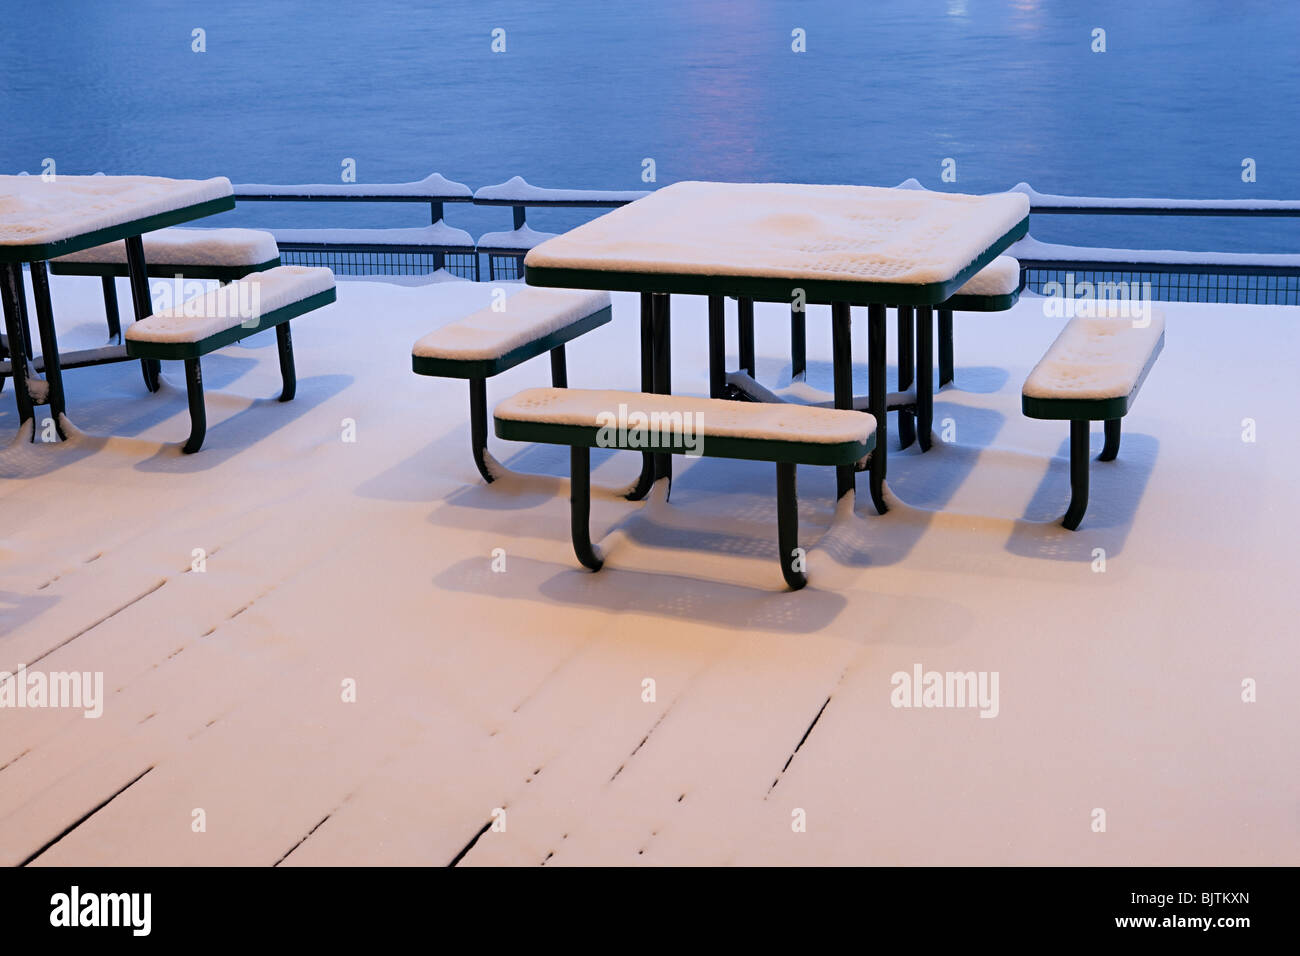 Snow covered tables and benches - Stock Image